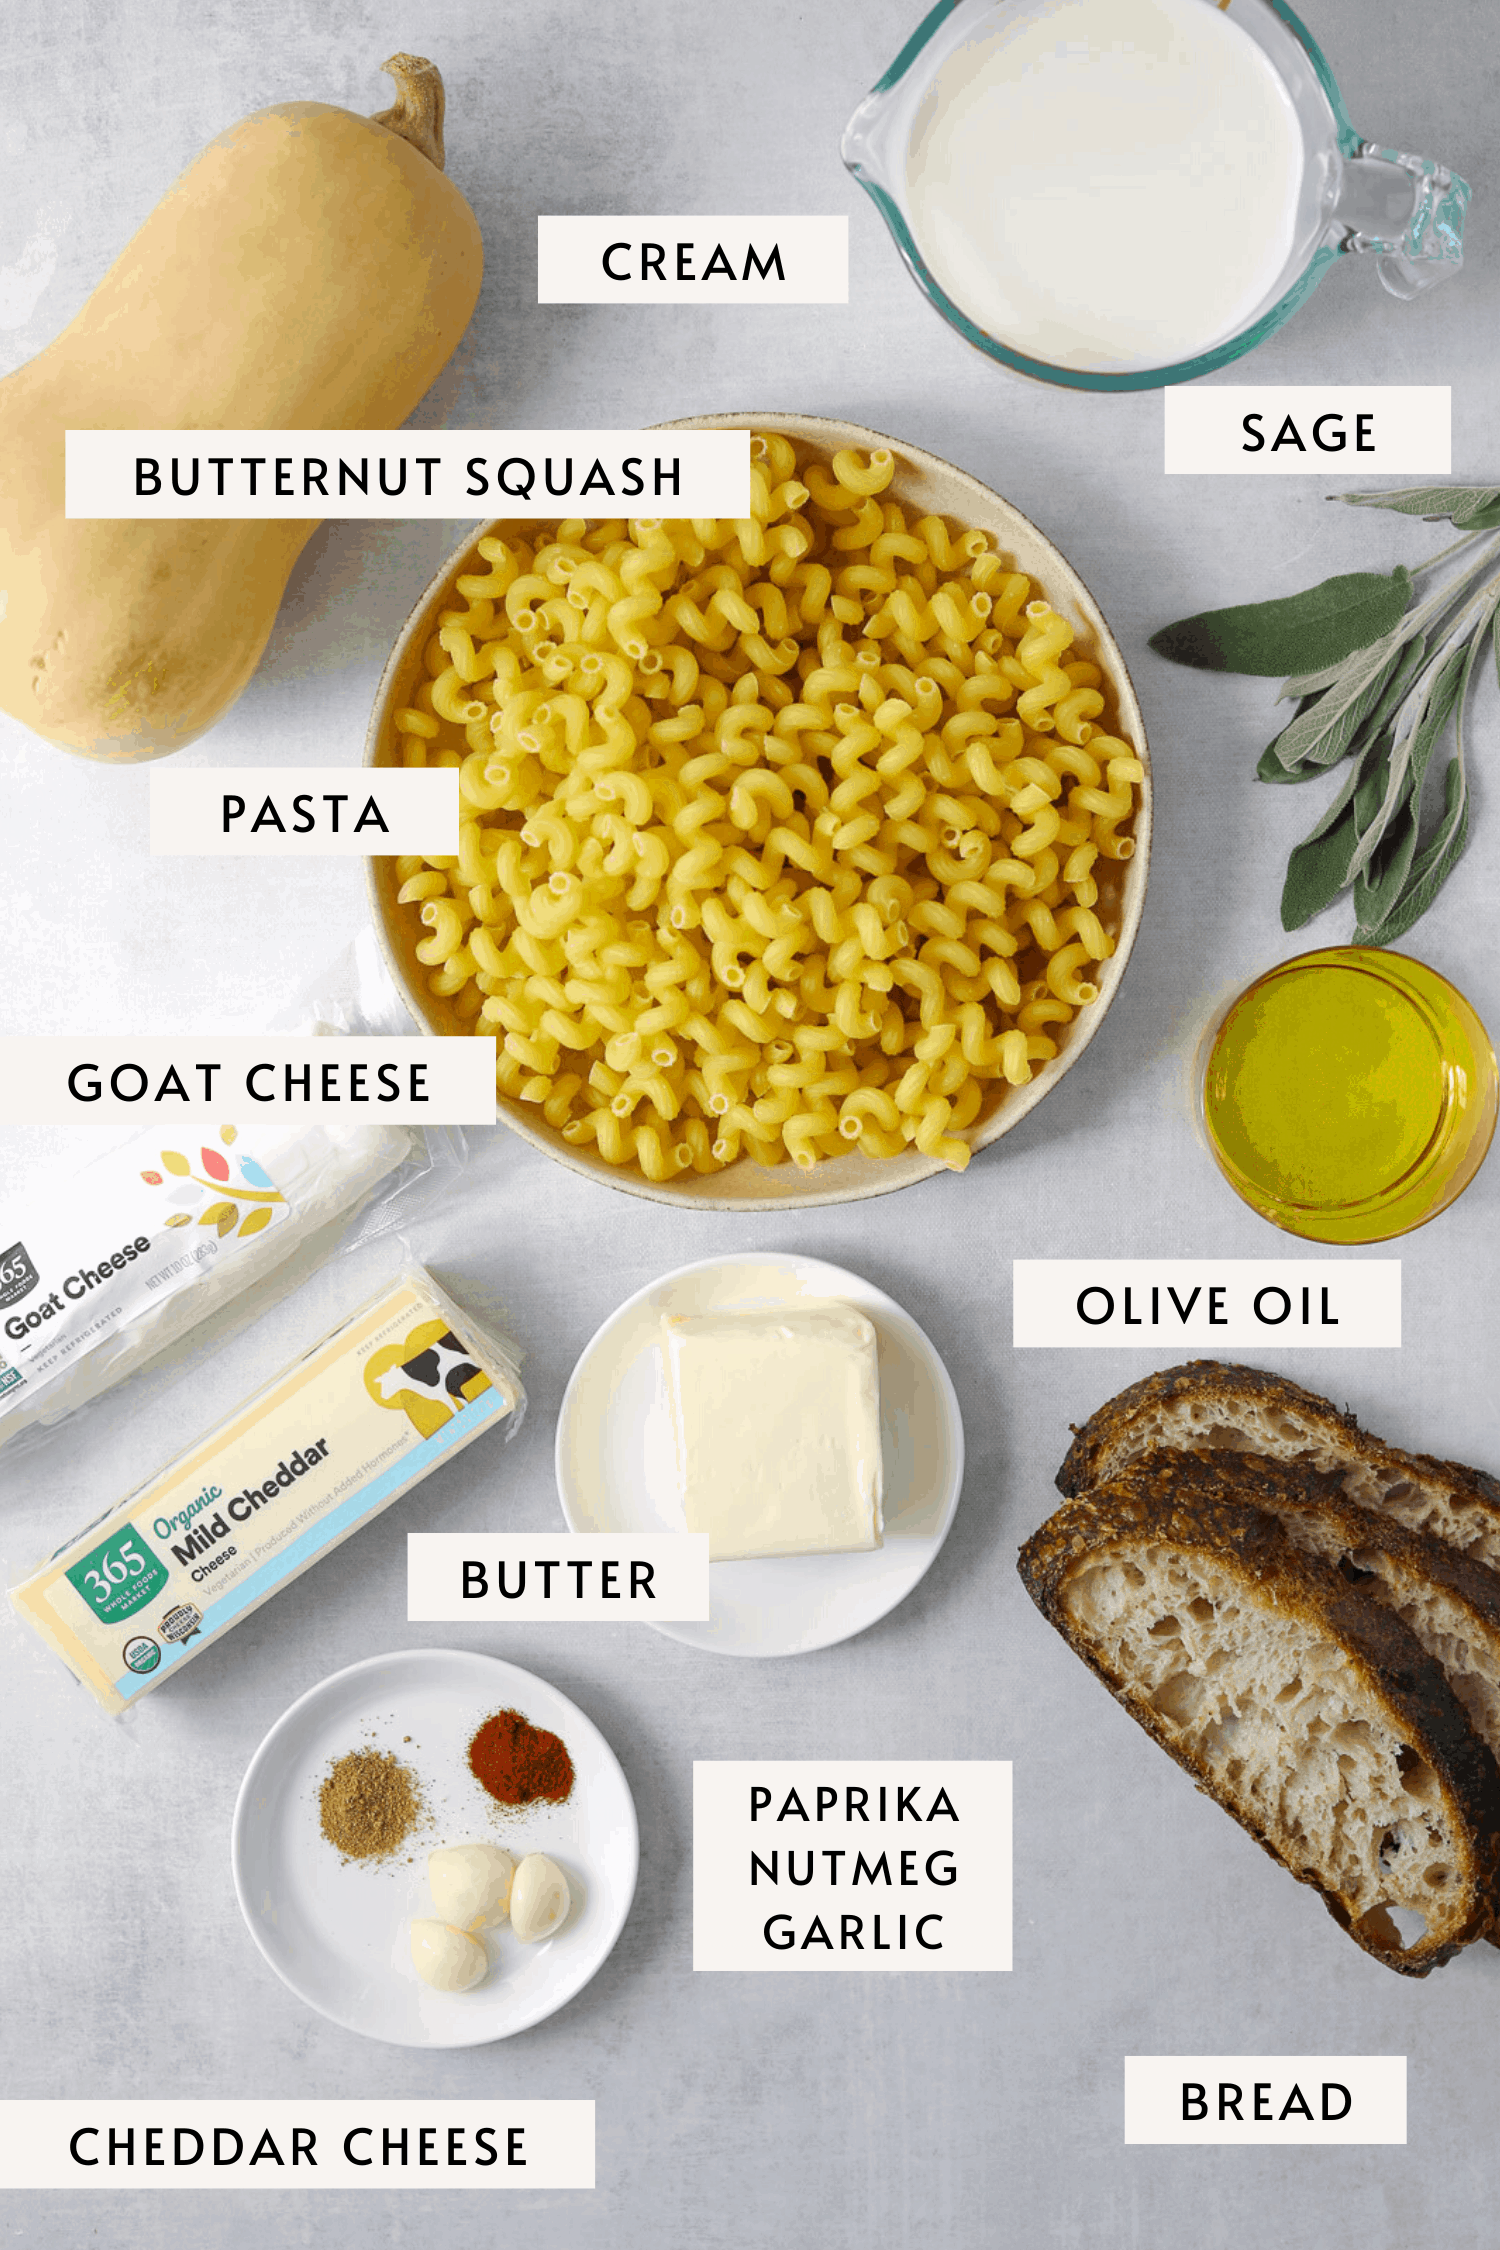 recipe ingredients individually labeled, dried pasta, butternut squash, goat cheese, sage, cream etc.